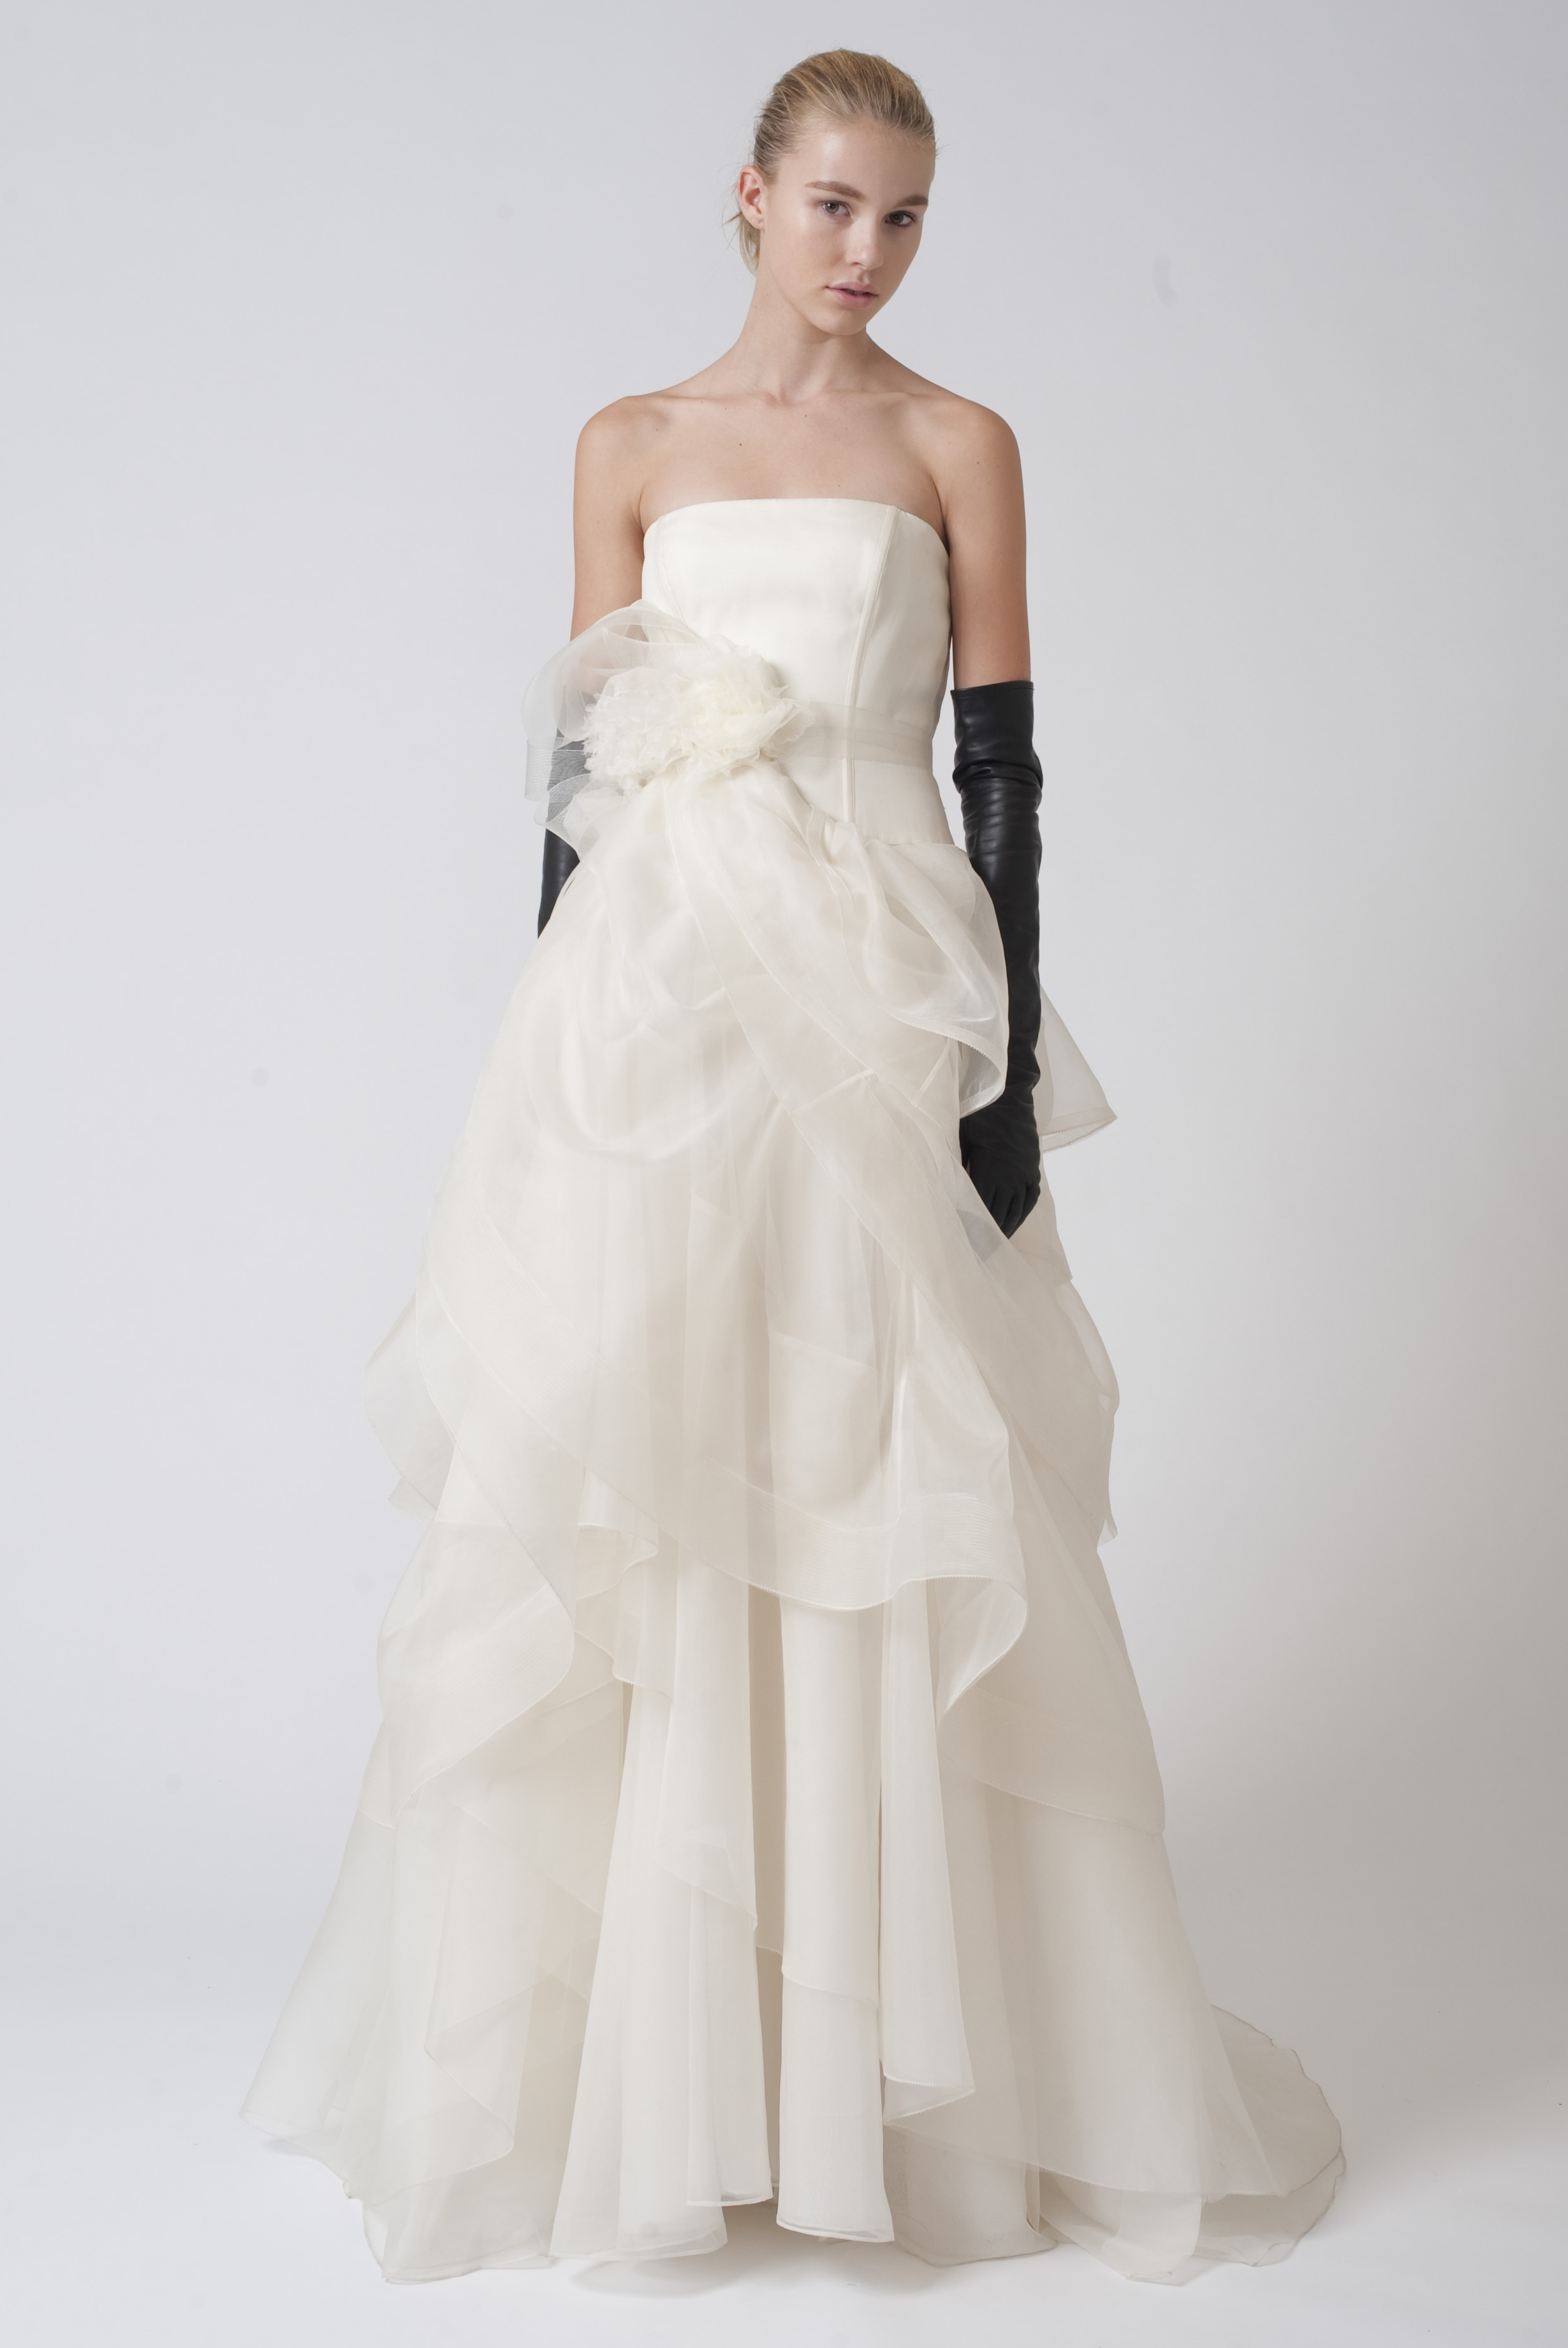 Vera-wang-wedding-dresses-fall-2010-3.original